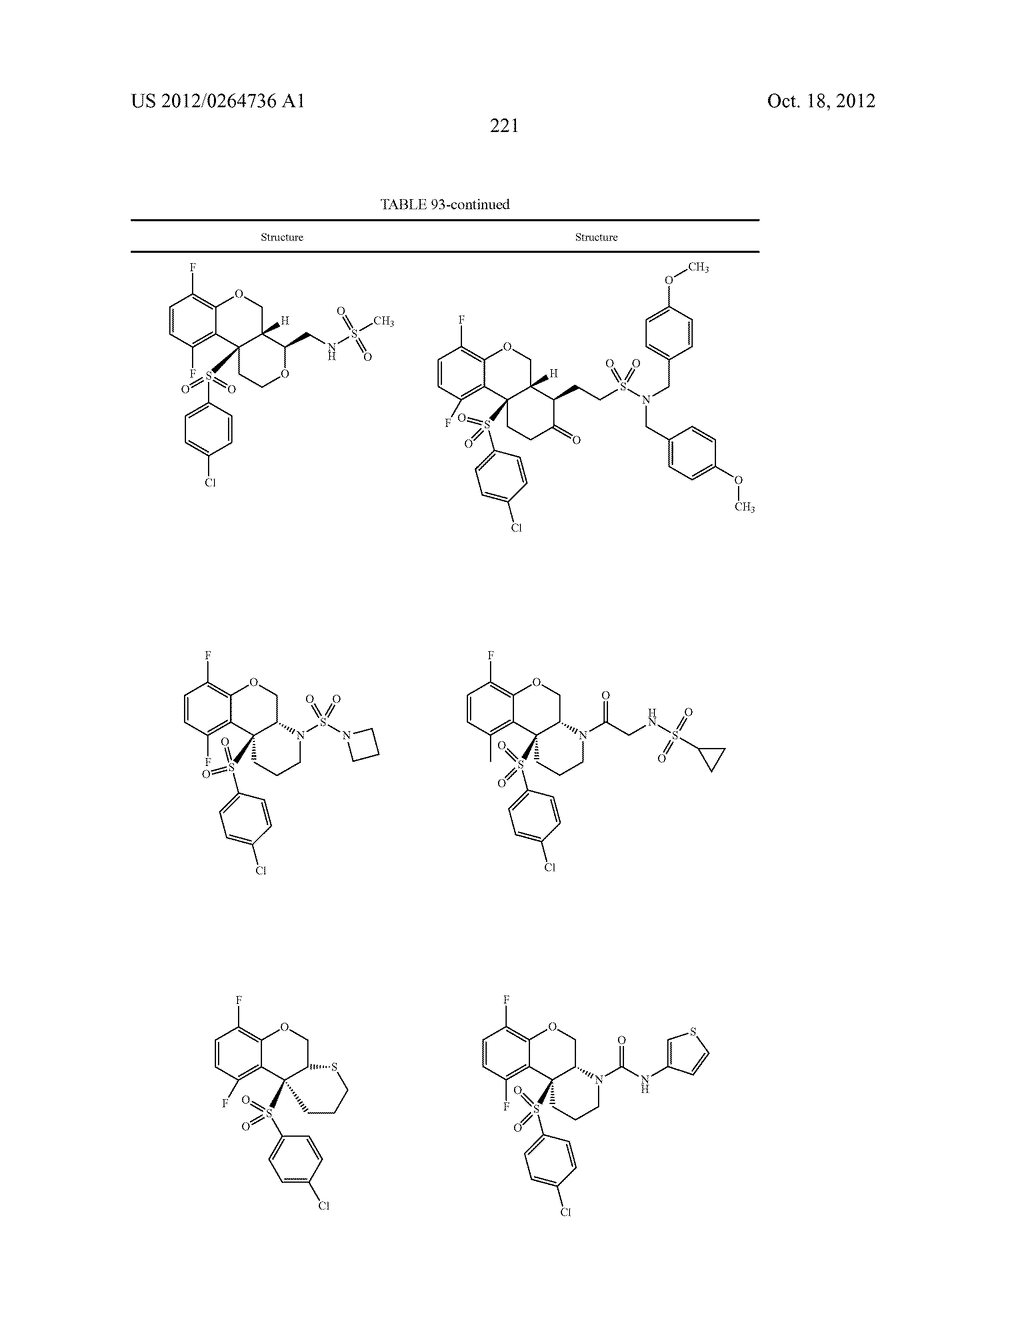 BENZENESULFONYL-CHROMANE, THIOCHROMANE, TETRAHYDRONAPHTHALENE AND RELATED     GAMMA SECRETASE INHIBITORS - diagram, schematic, and image 222